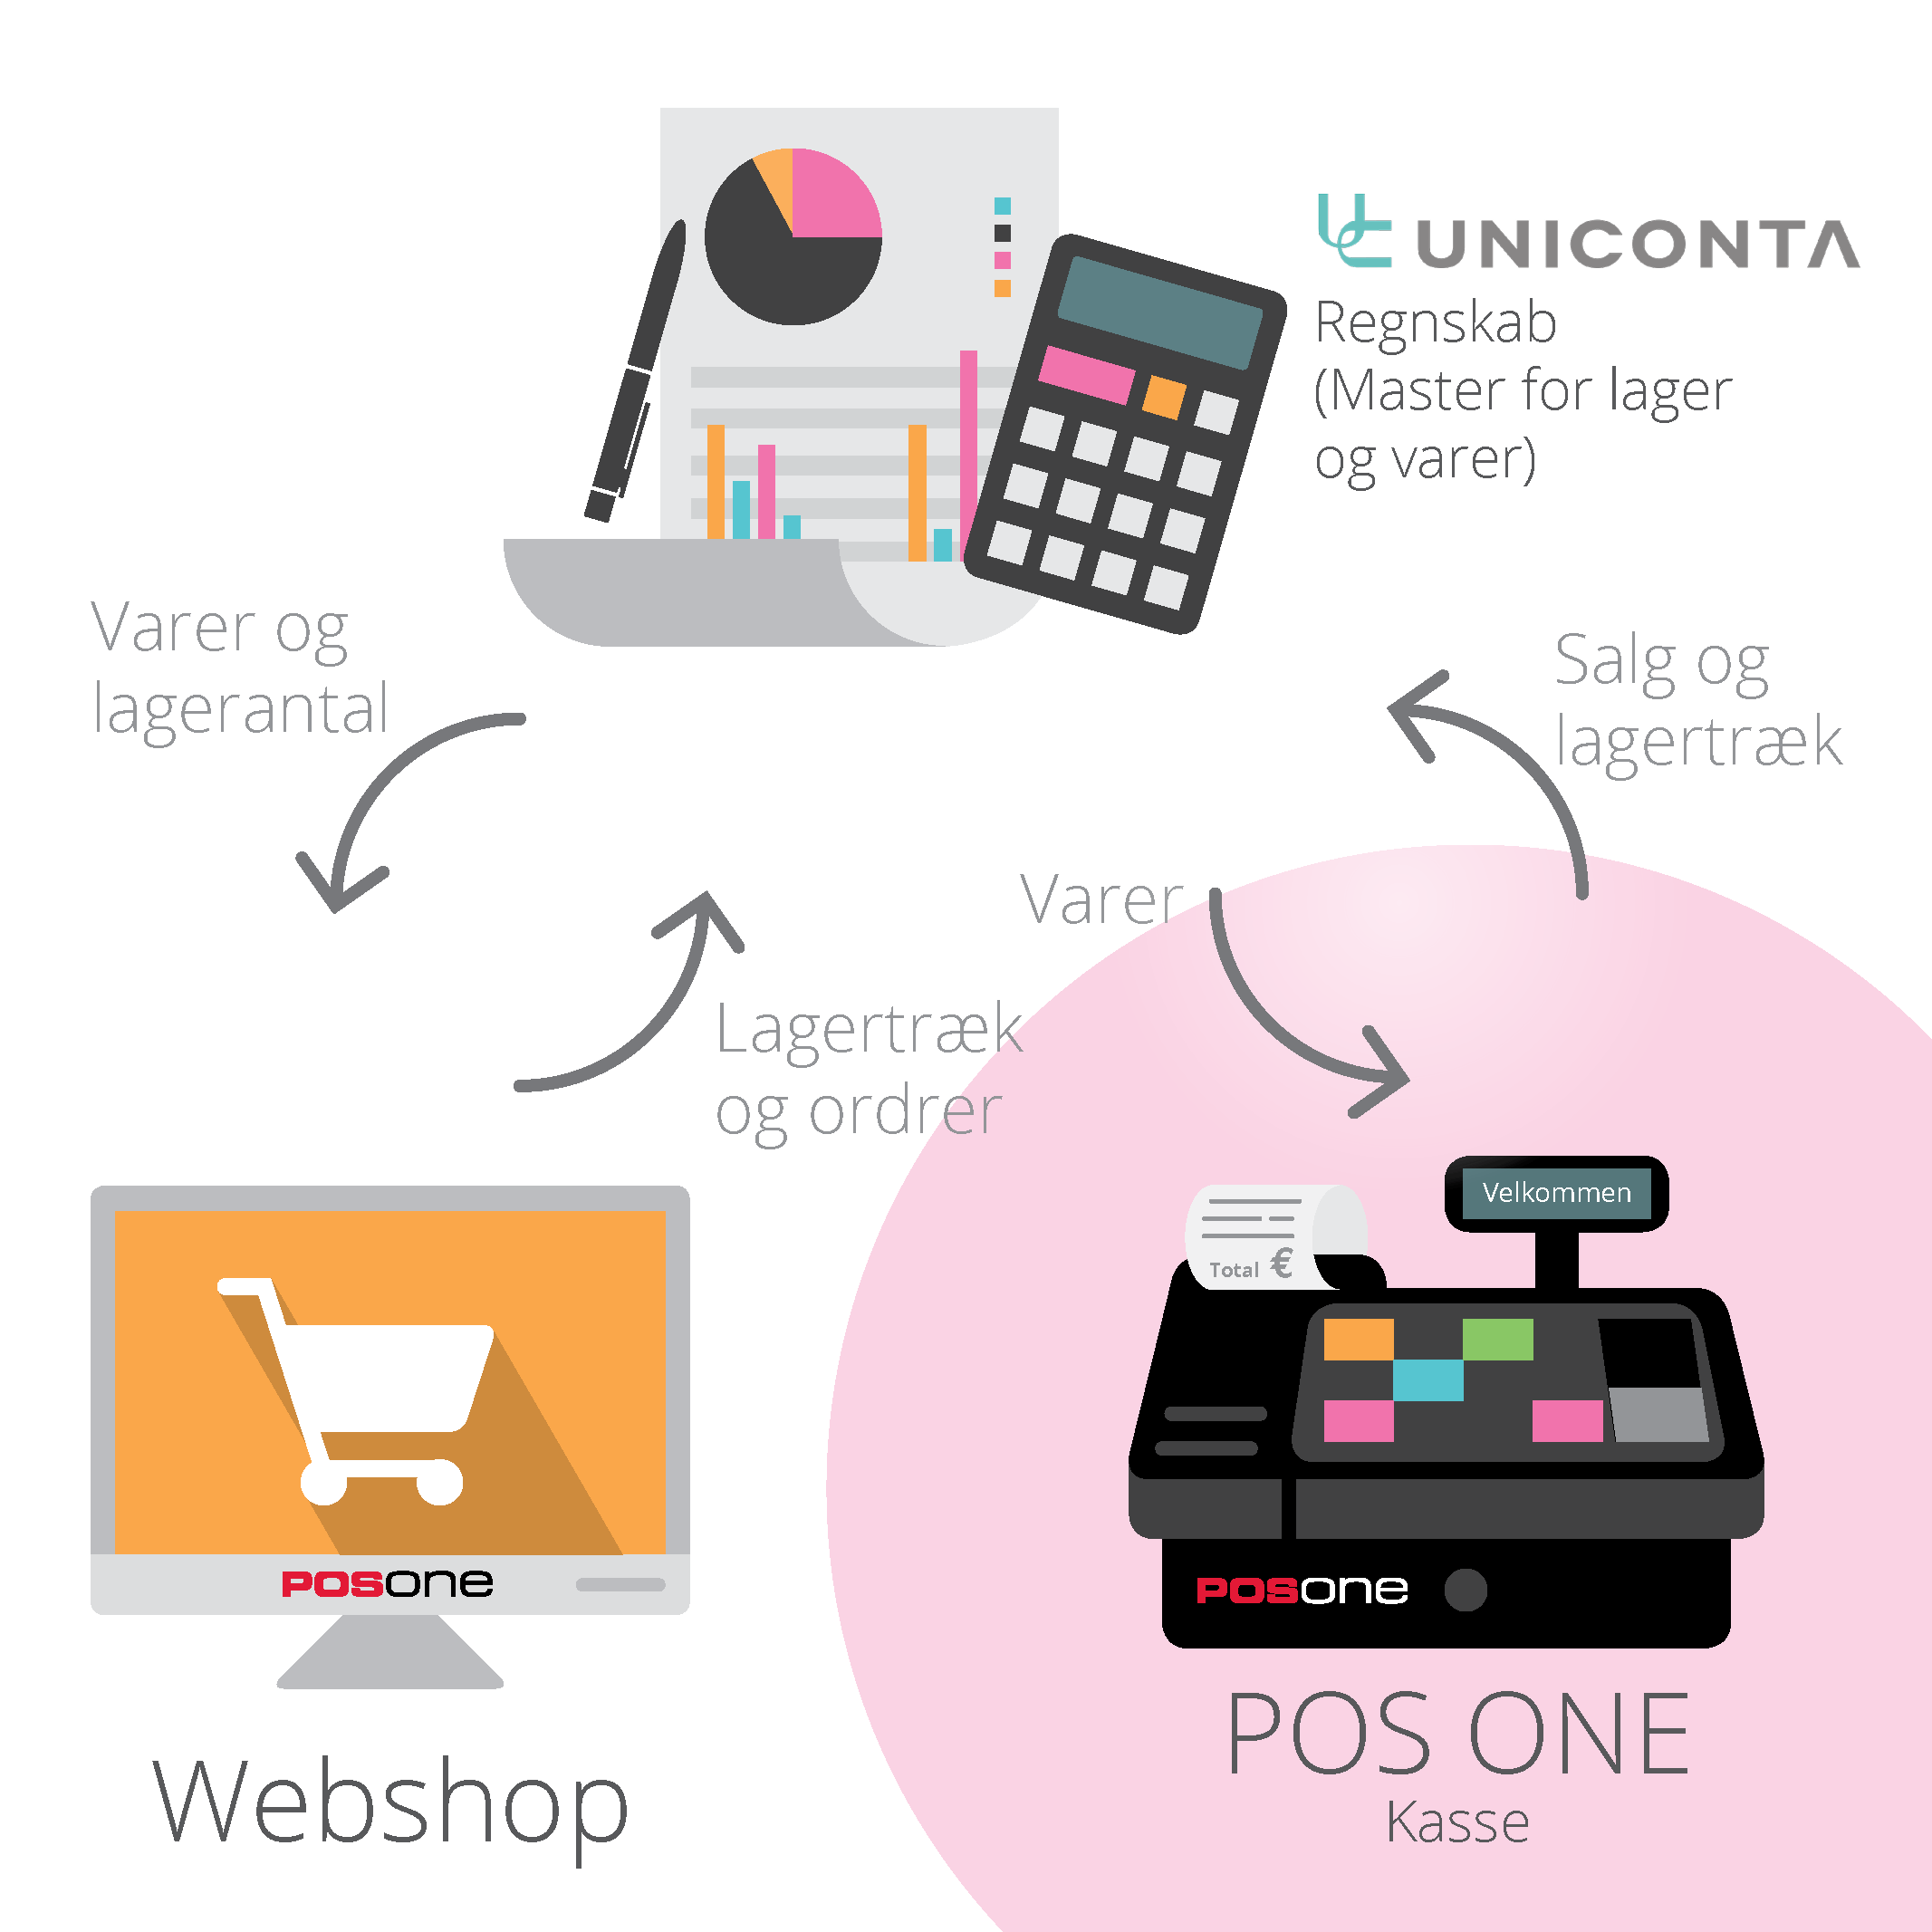 Uniconta Add-ons Store